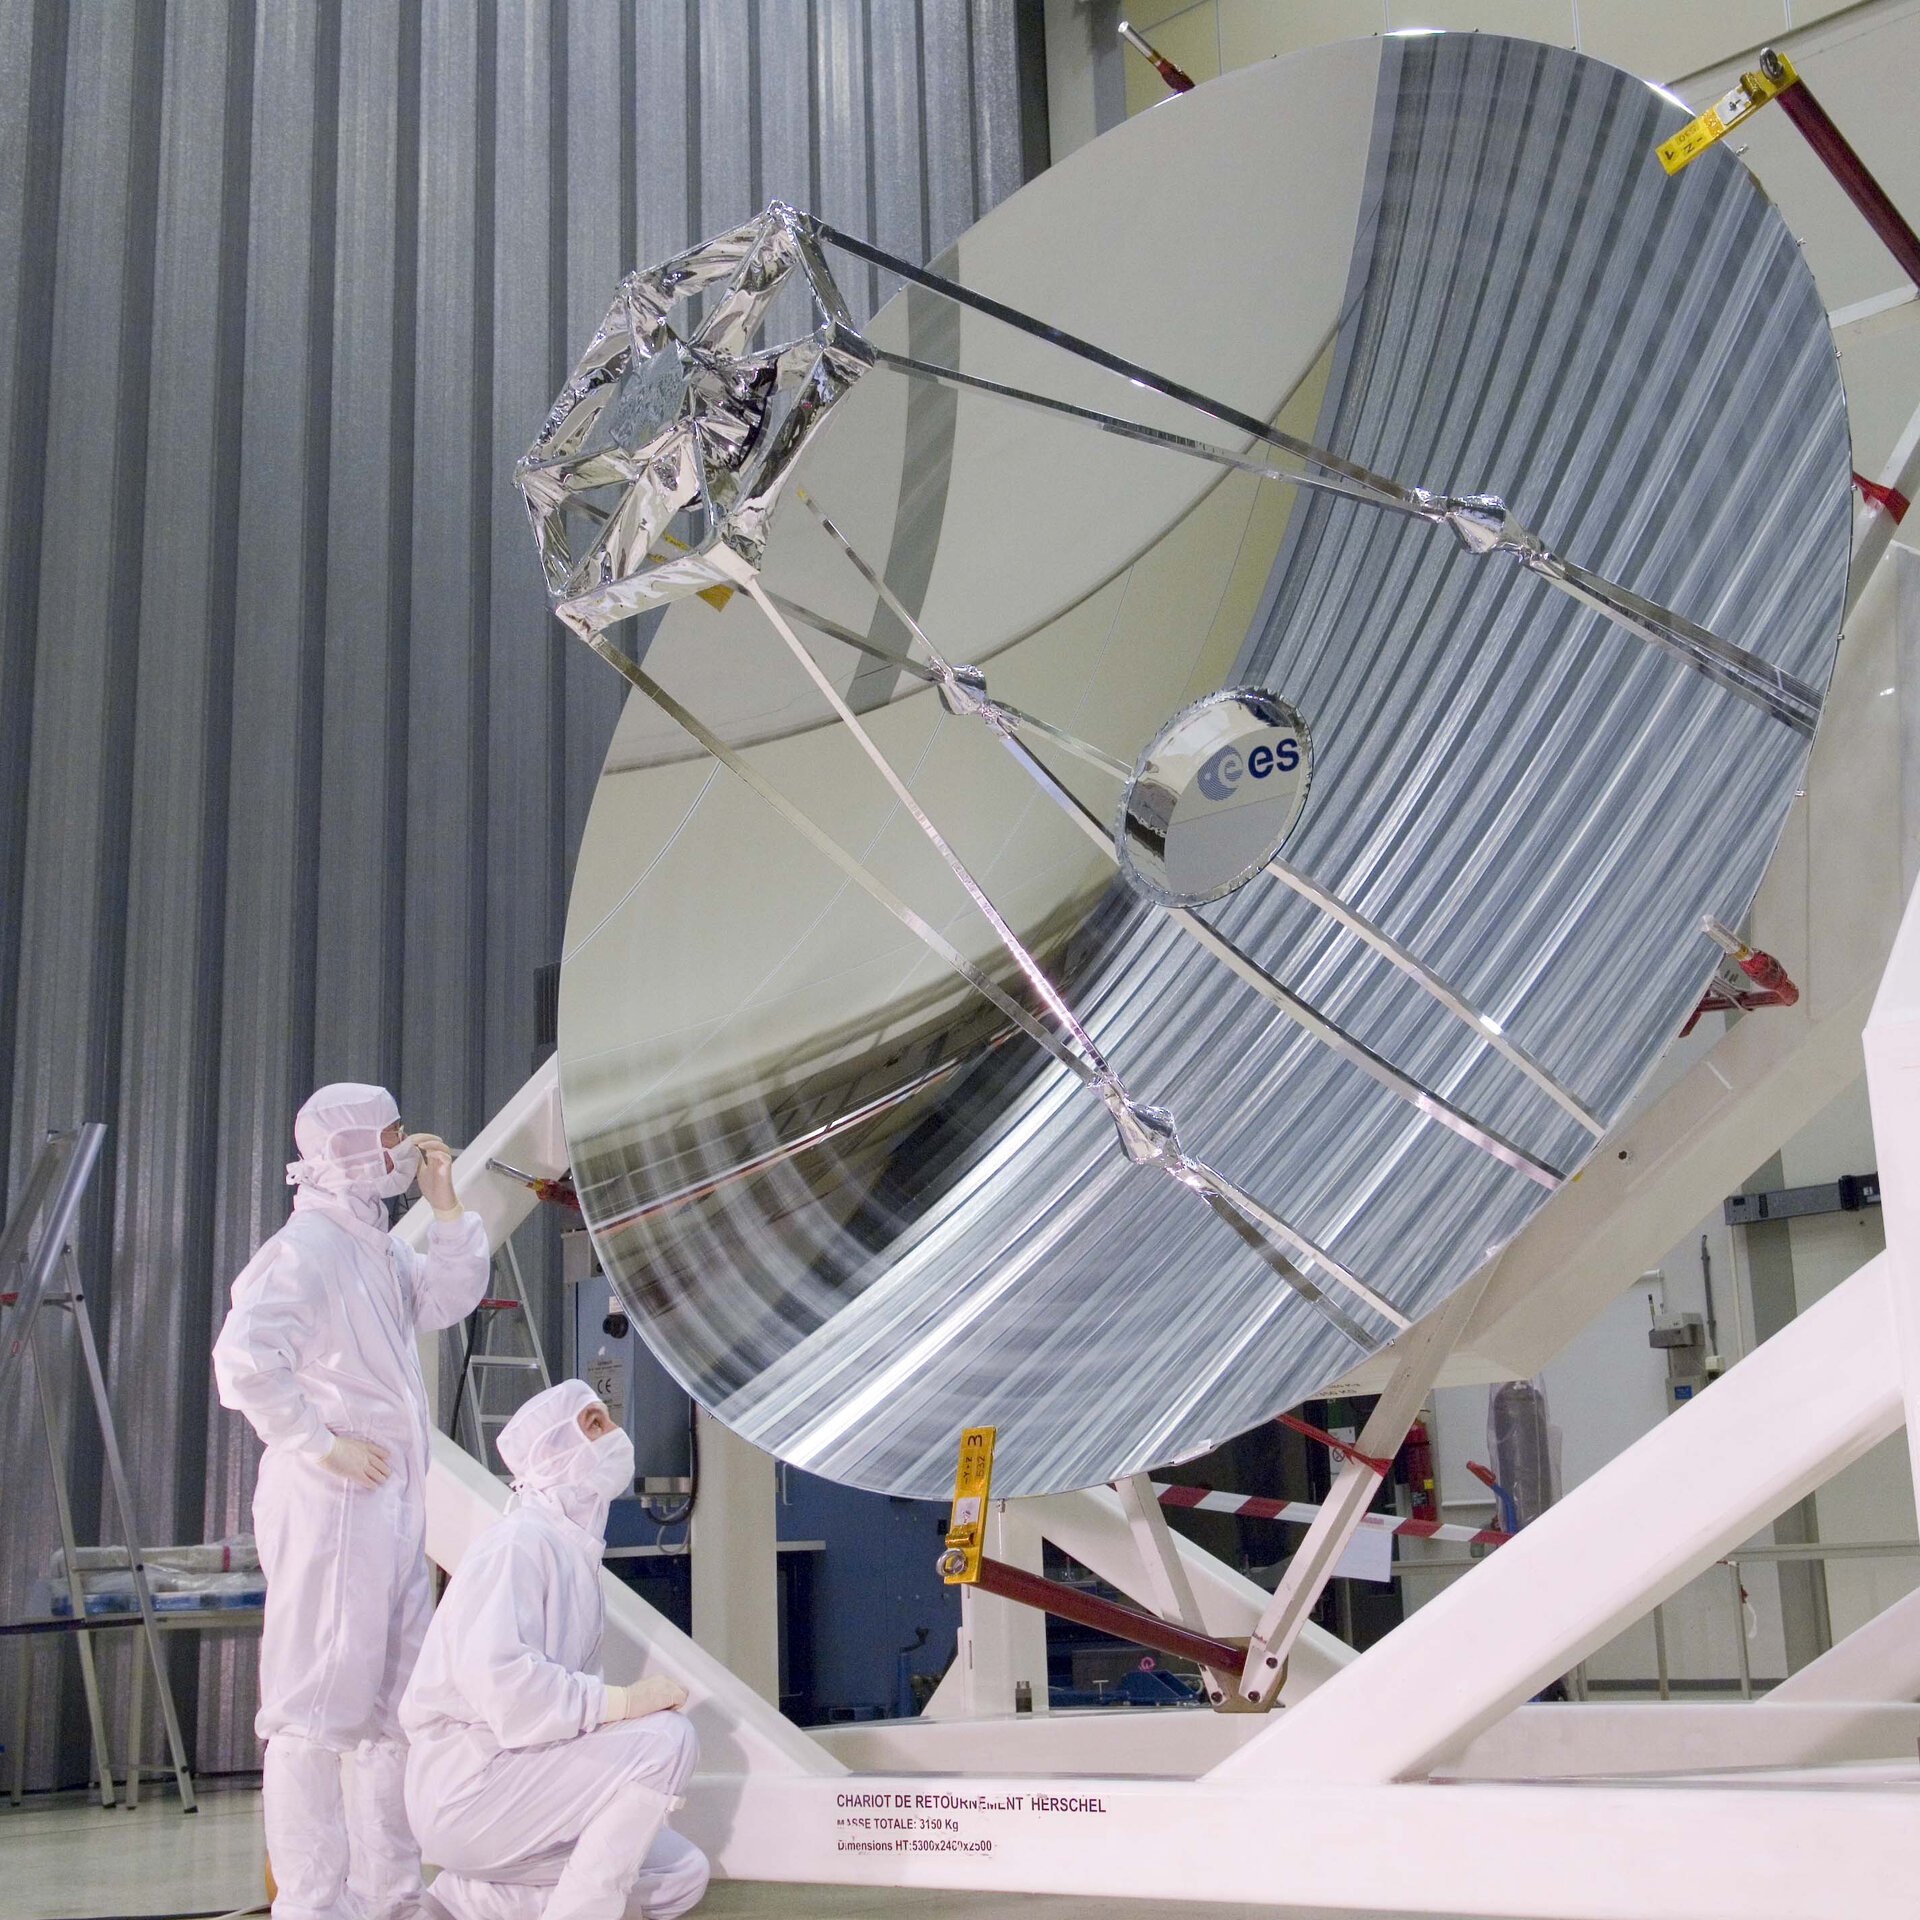 Inspection of the Herschel telescope